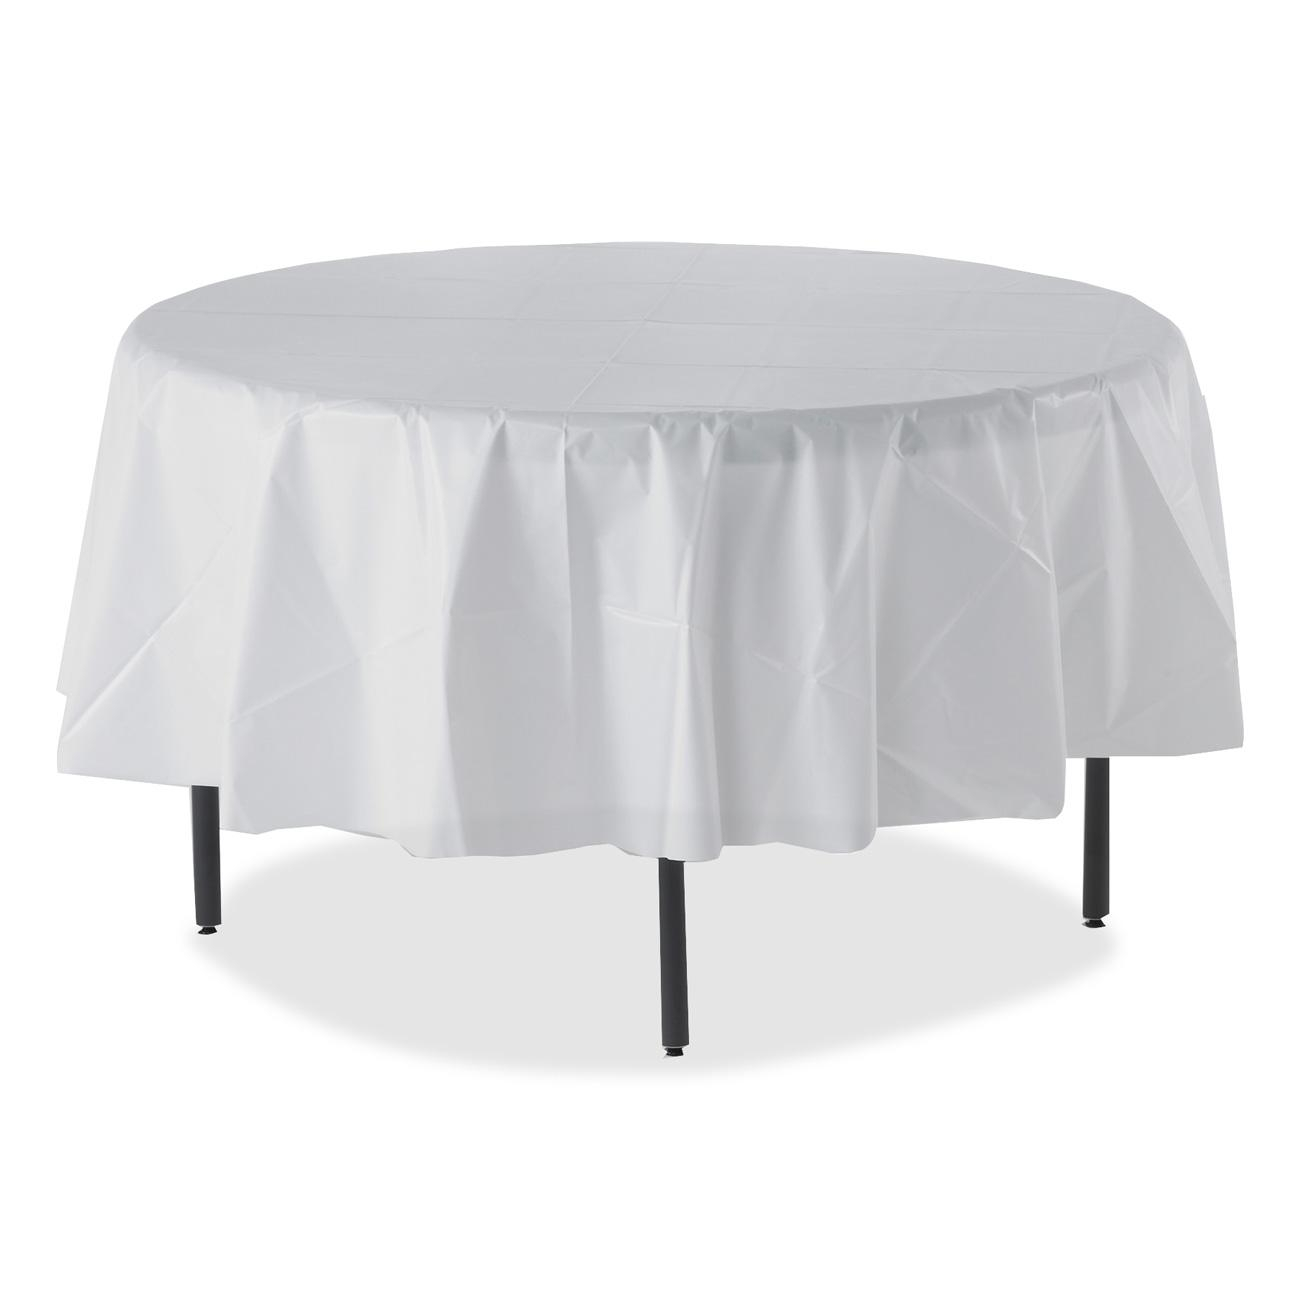 Image of: White patio table cover